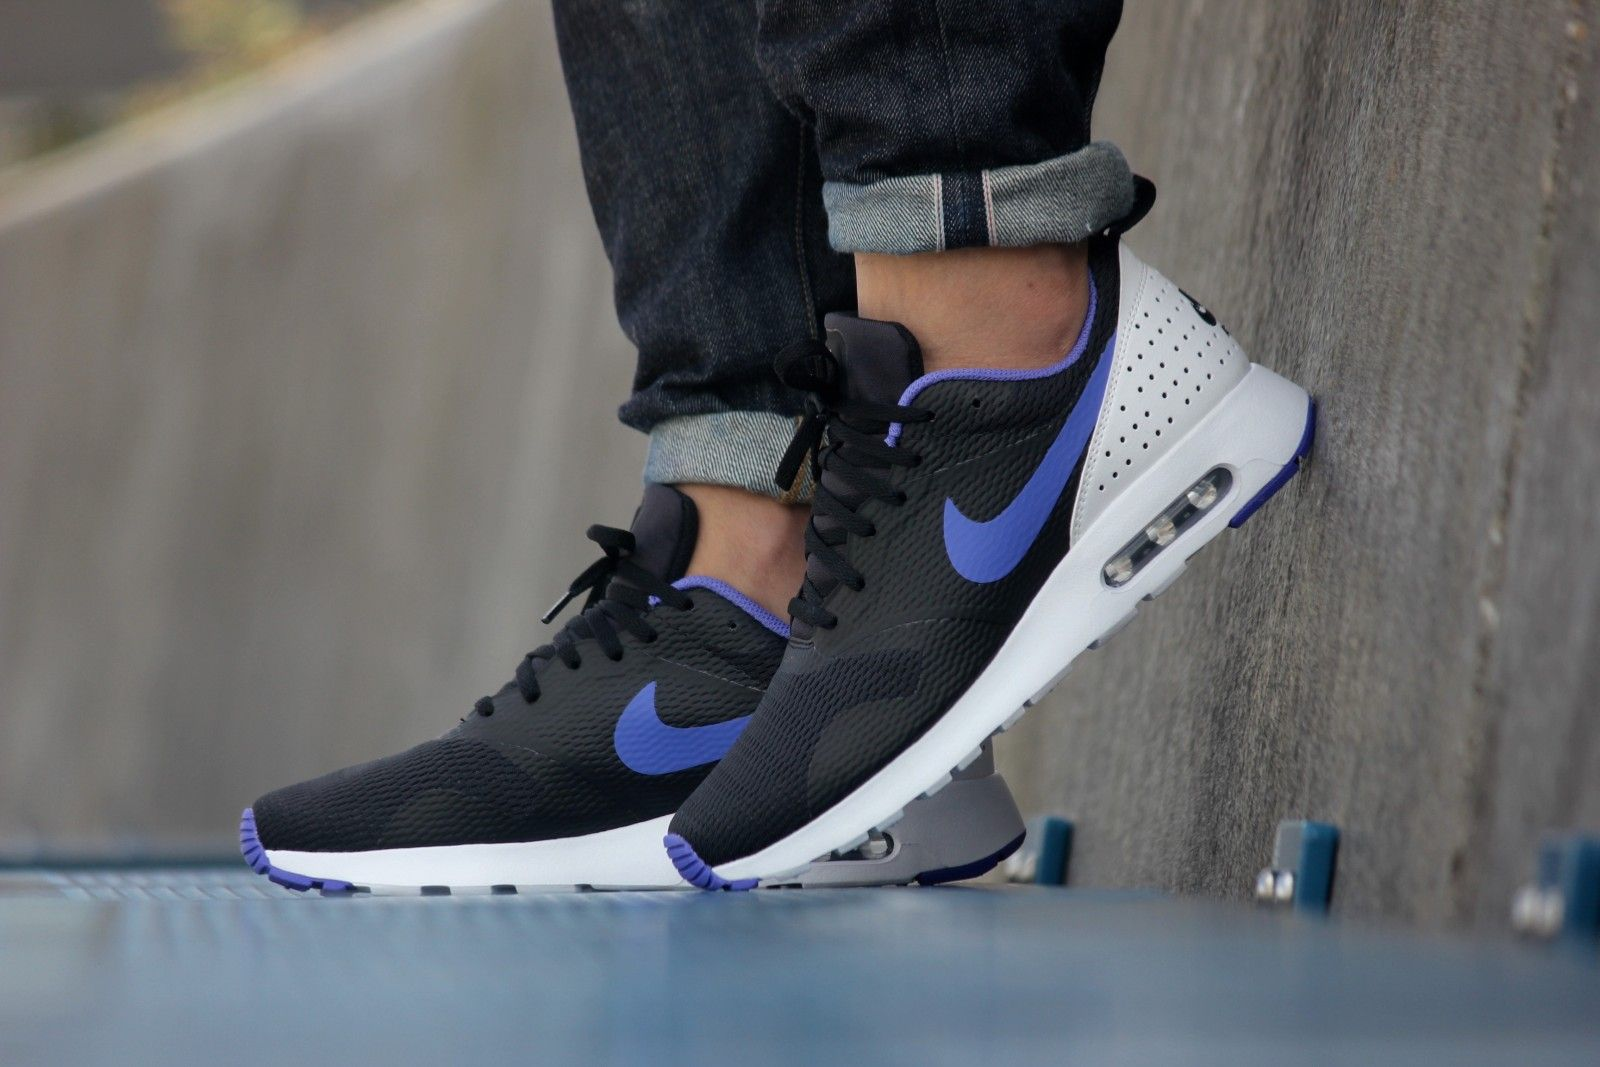 Nike Air Max Tavas Black/ Persian Violet - 705149-025